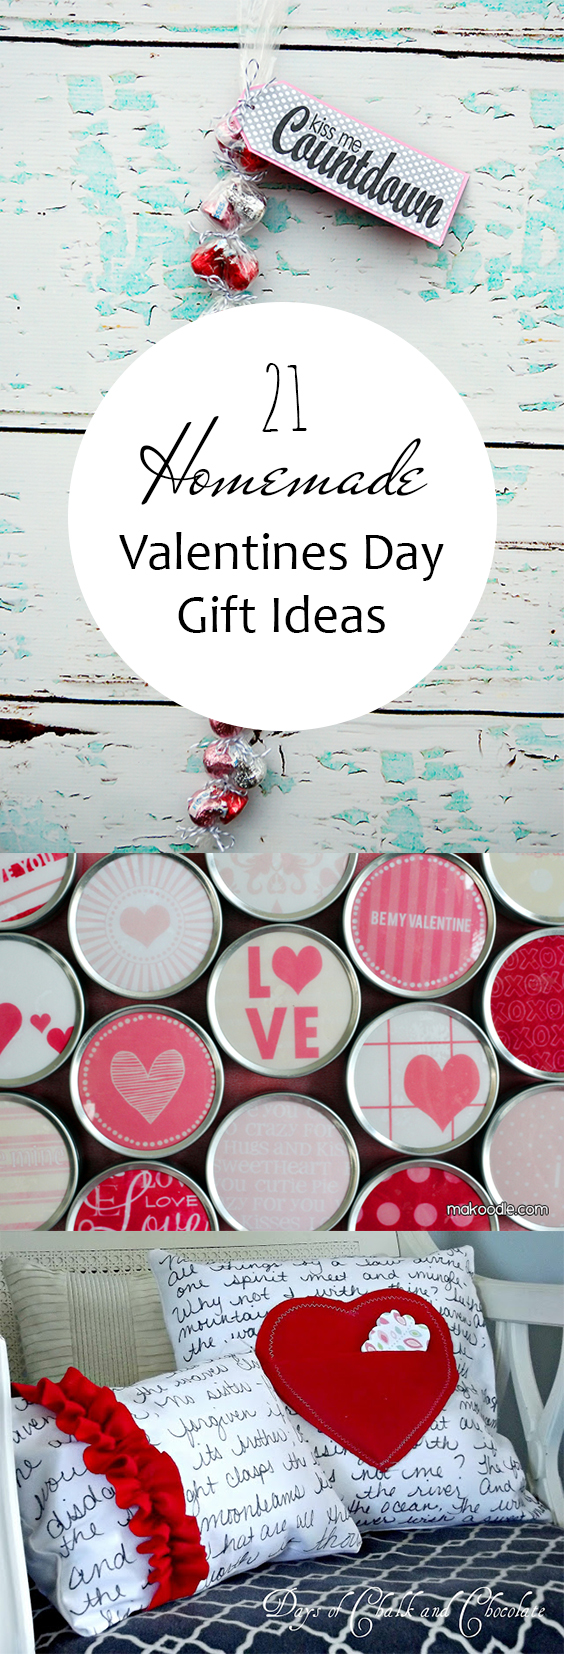 Valentines Day Gift Ideas, Last Minute Gift Ideas, Easy Valentines Day Gift Ideas, Valentines Day Gifts, DIY Gift Ideas, Homemade Gift Ideas, Homemade Holiday Gifts